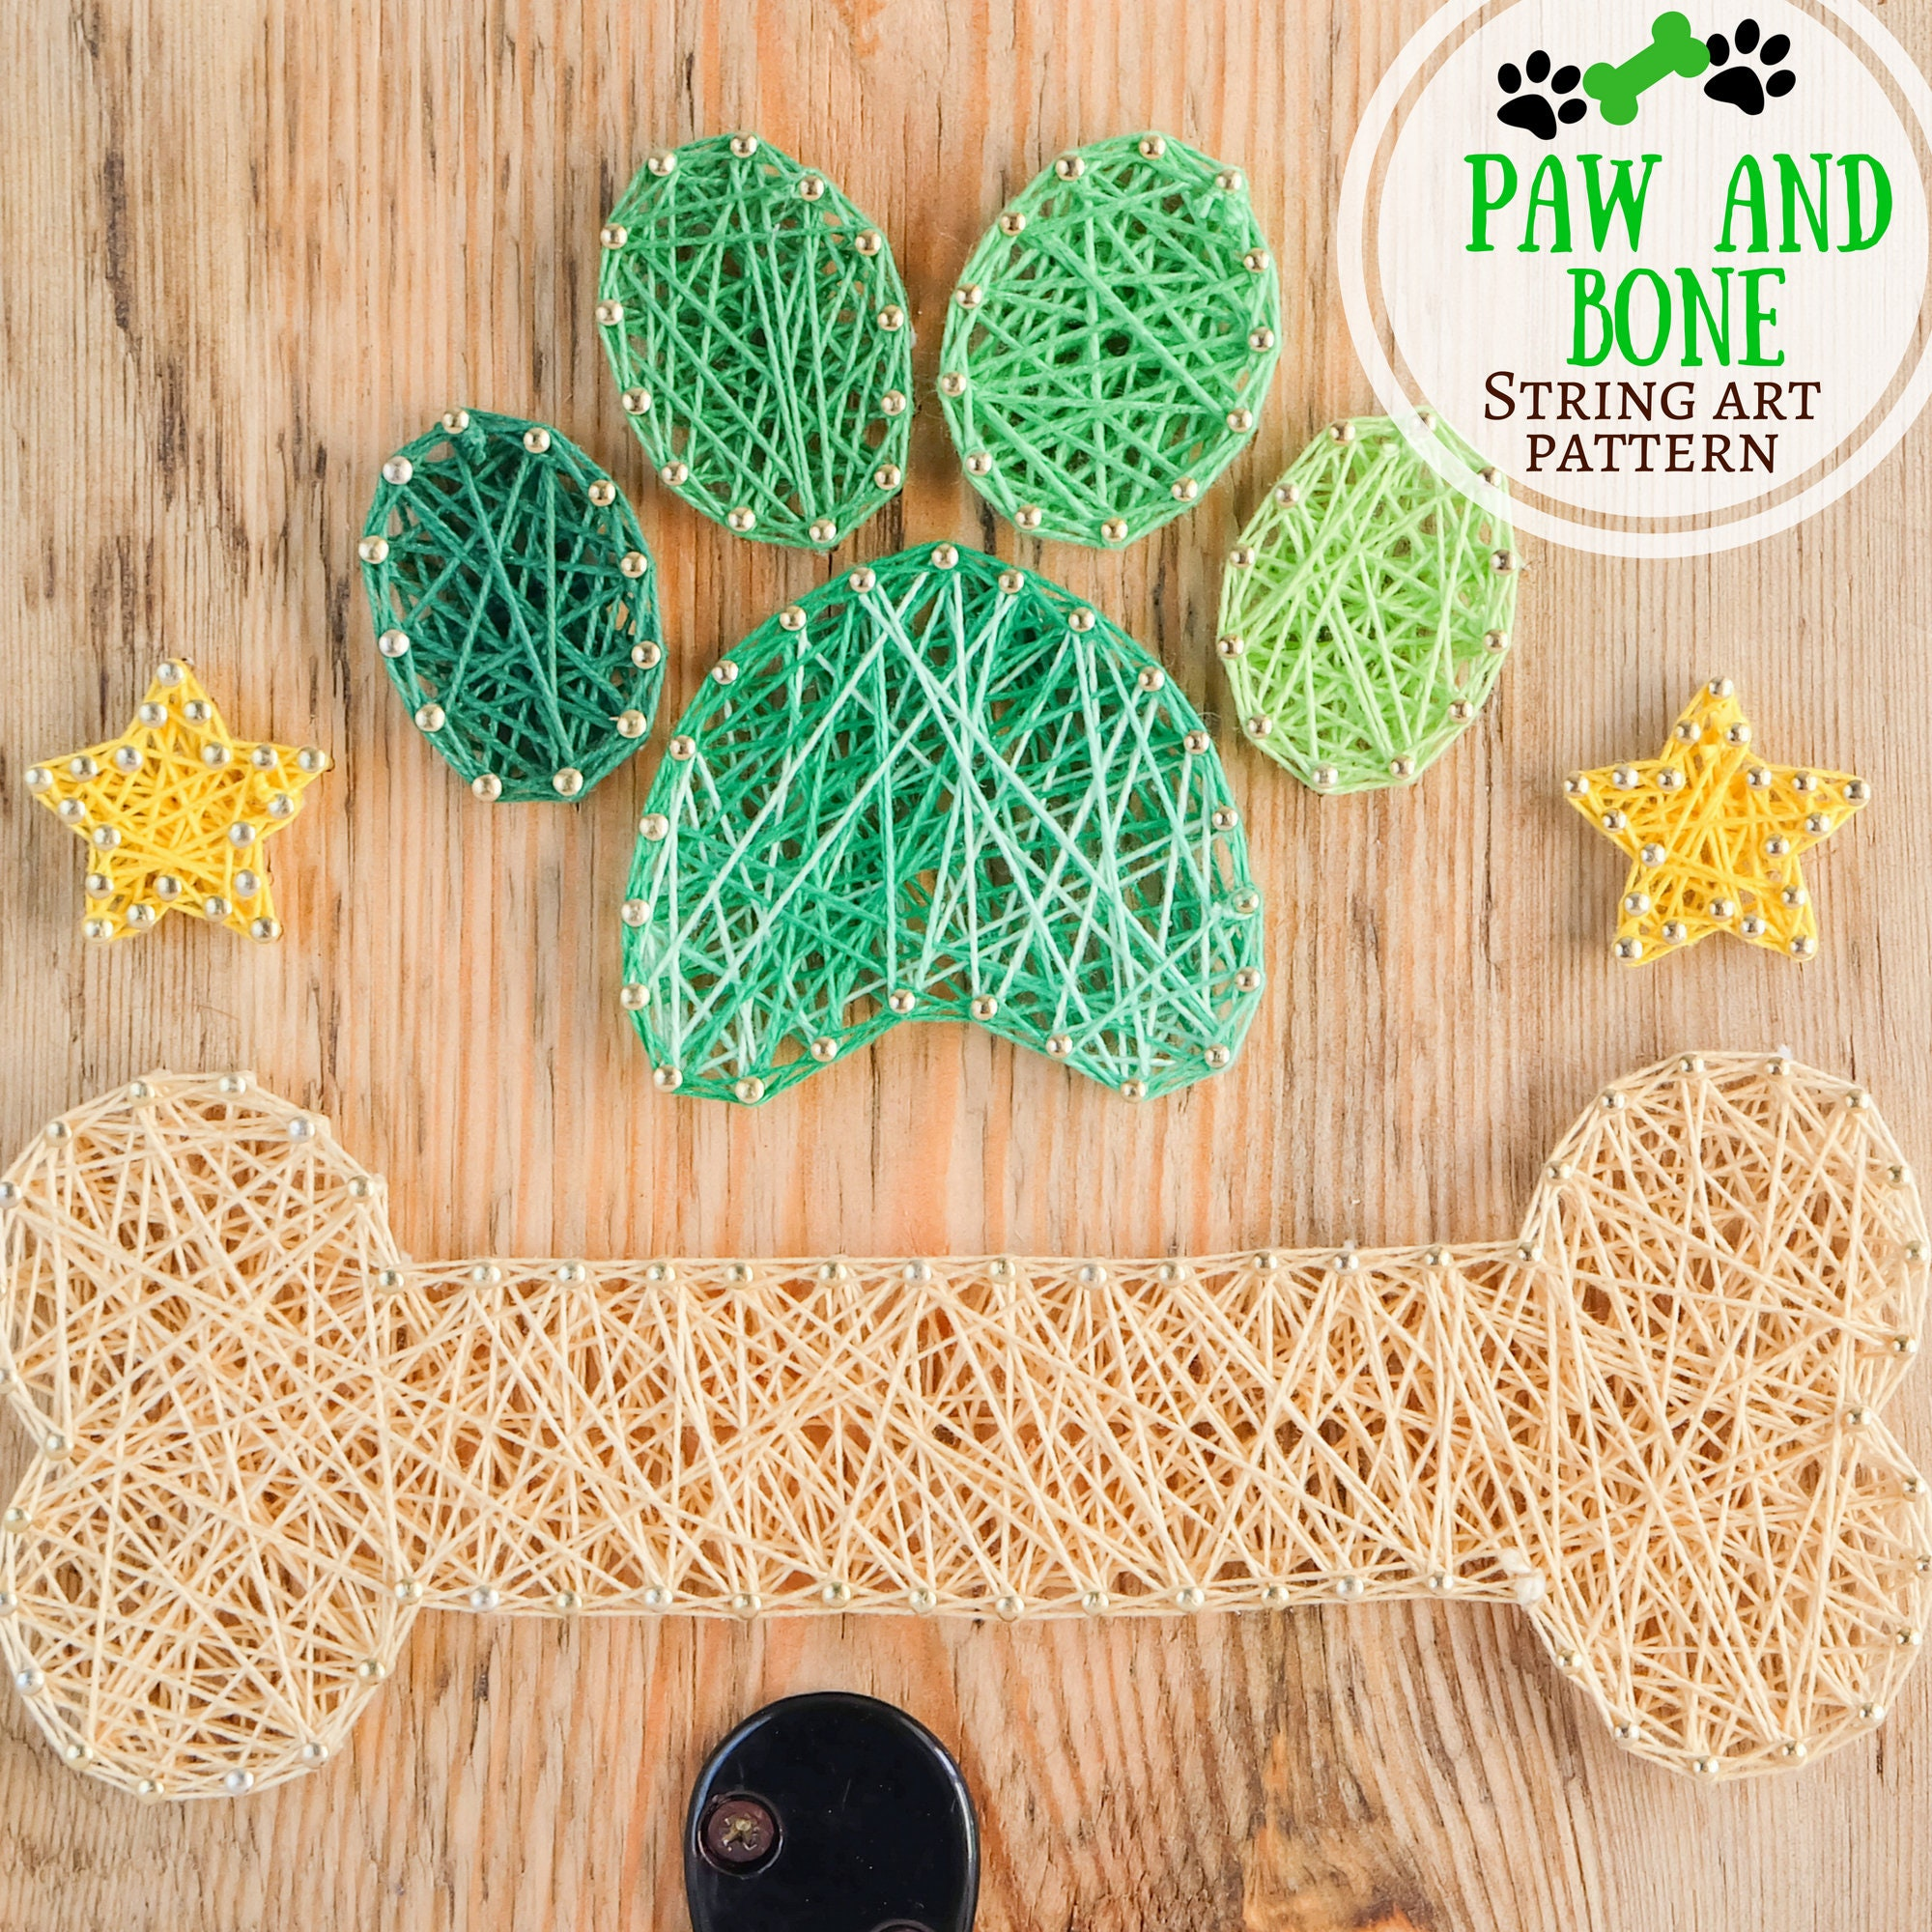 Paw and bone string art pattern, perfect craft project for summer ...